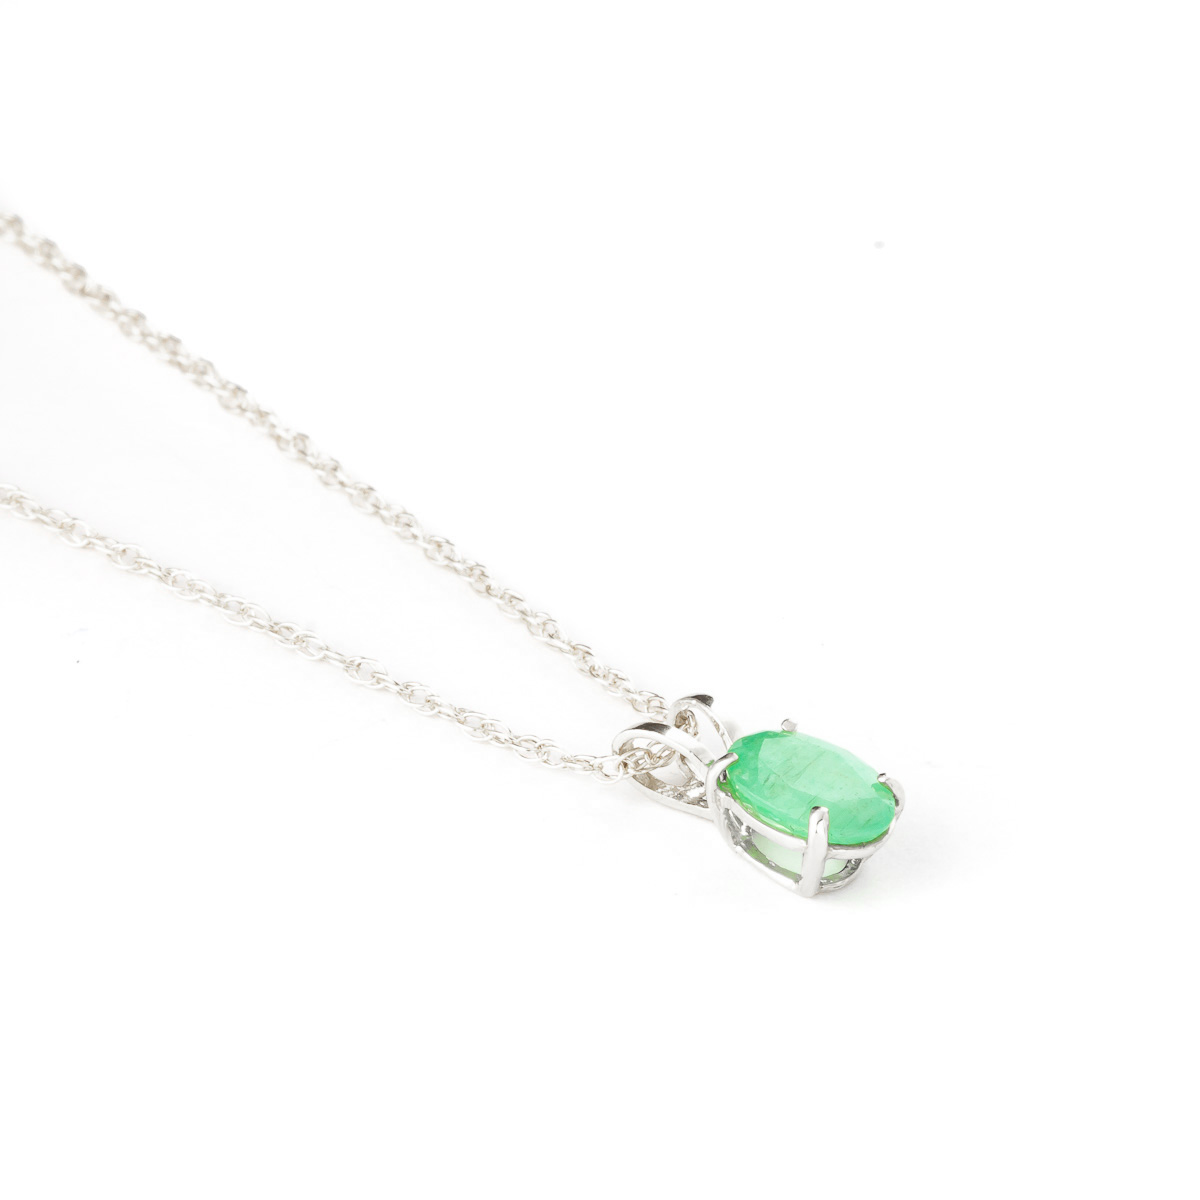 Oval Cut Emerald Pendant Necklace 0.75ct in 14K White Gold